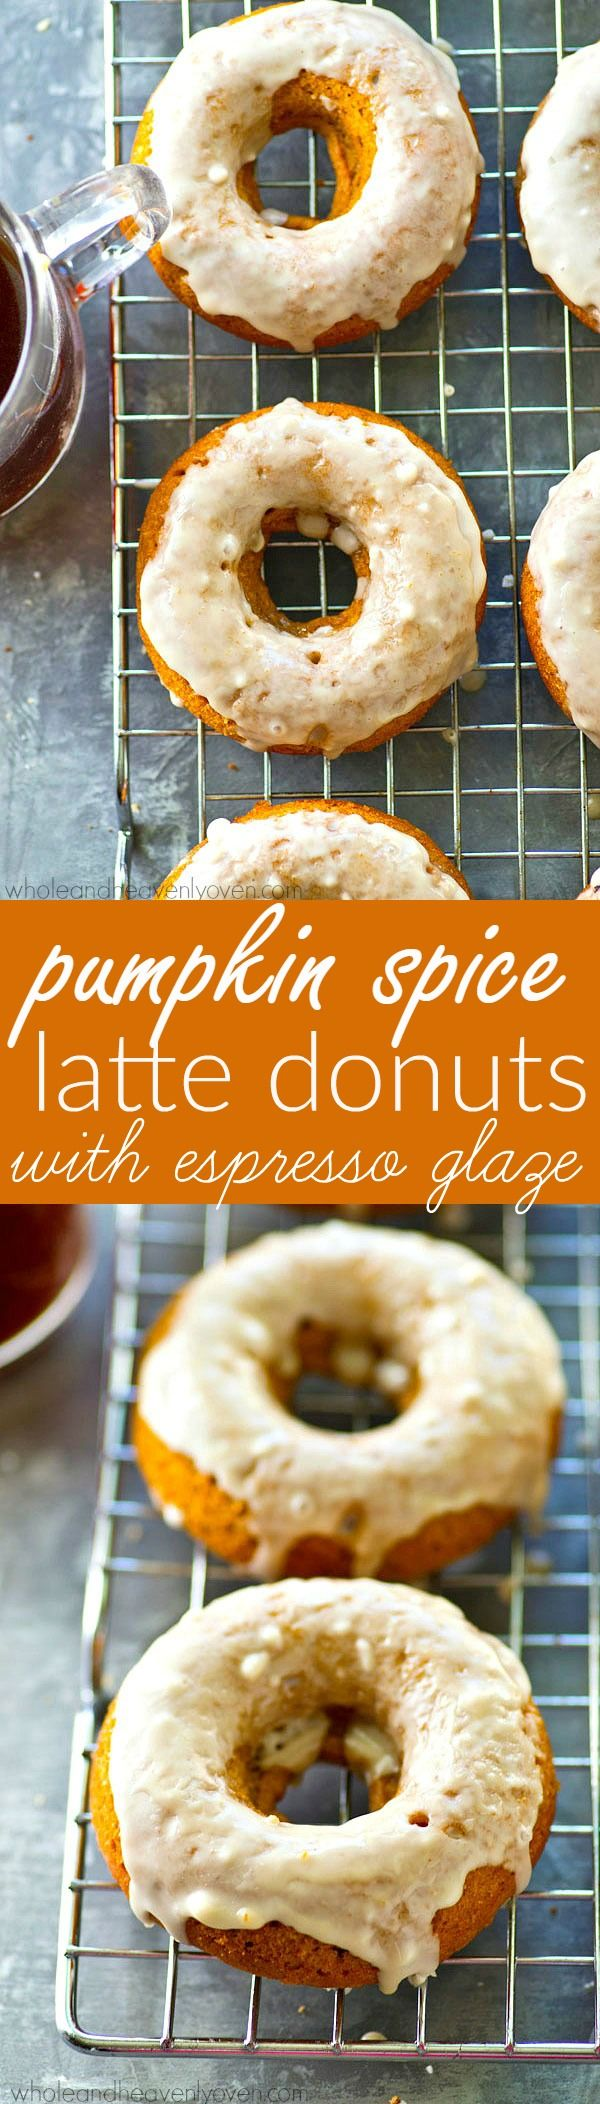 Get your pumpkin spice latte fix in donut form! These moist pumpkin donuts are unbelievably soft inside and covered with an amazing espresso glaze.--- best consumed with a pumpkin spice latte nearby!